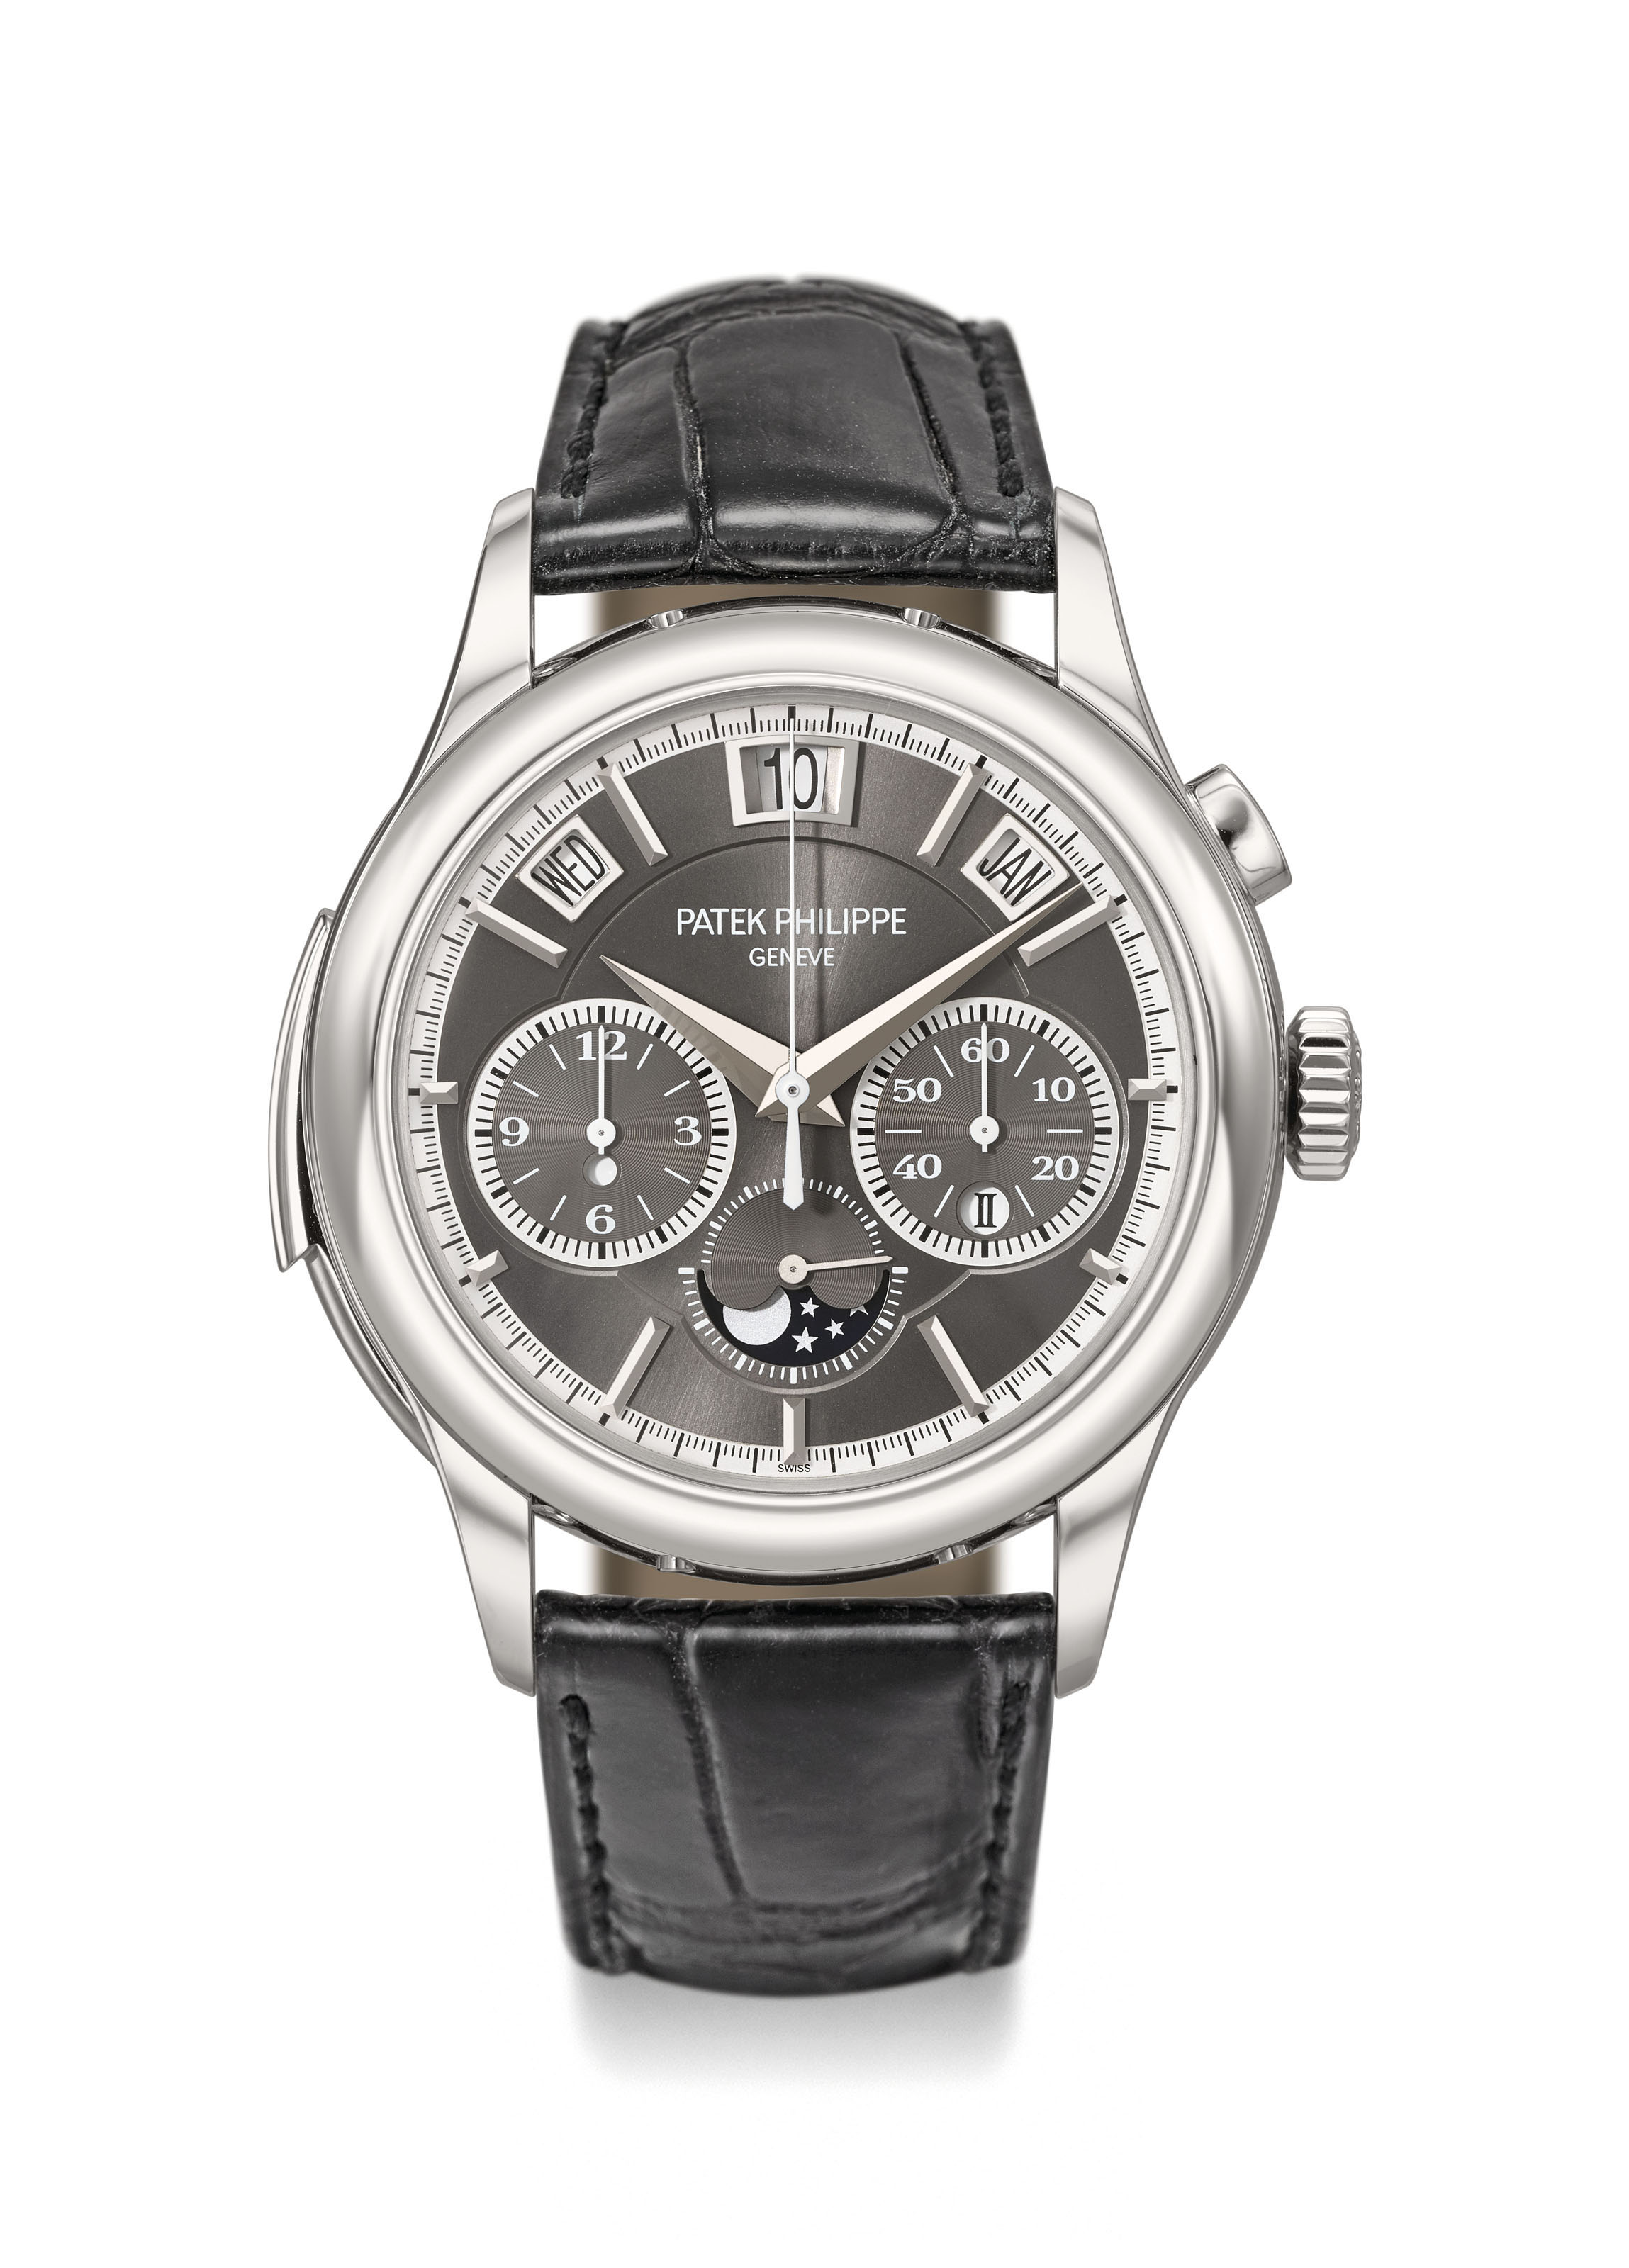 Patek Philippe. An exceptionally fine and important platinum minute repeating instantaneous perpetual calendar single button chronograph automatic wristwatch with leap year indication, day and night display and moon phases, additional solid case back, setting pin, sale tag, original certificate and box